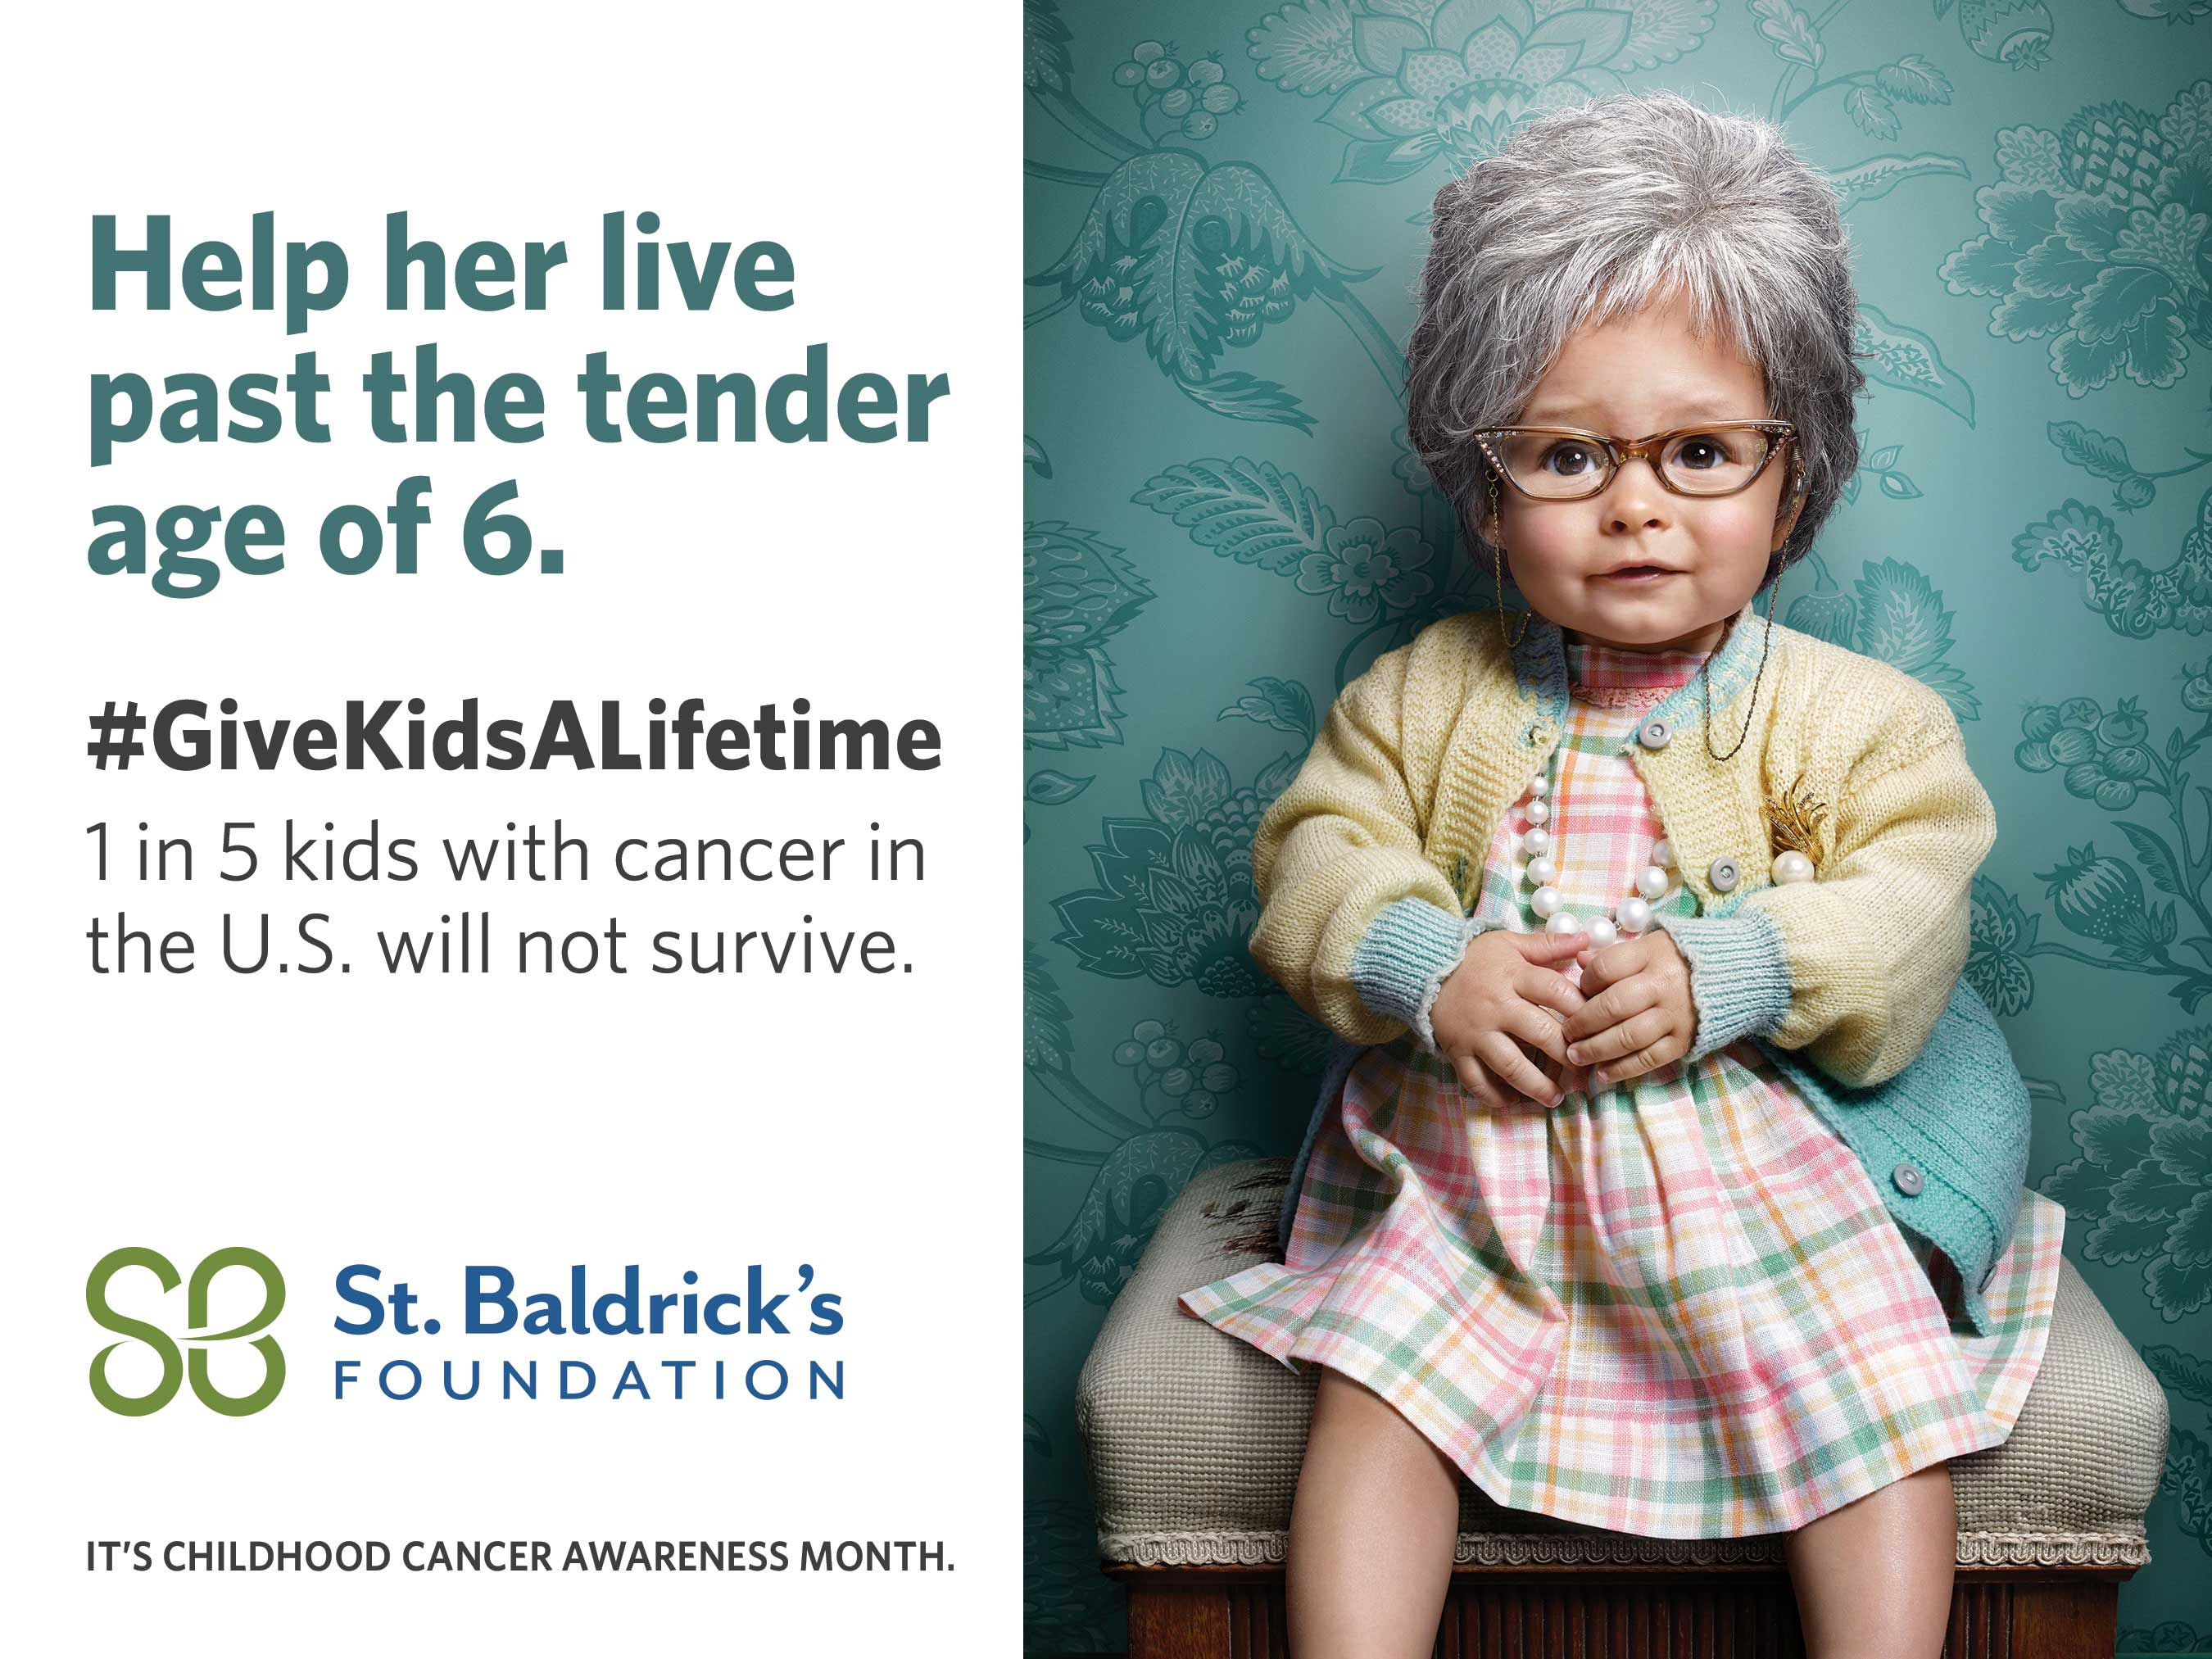 The St. Baldrick's Foundation is not trying to give kids 5 more years, it's trying to give them a lifetime.